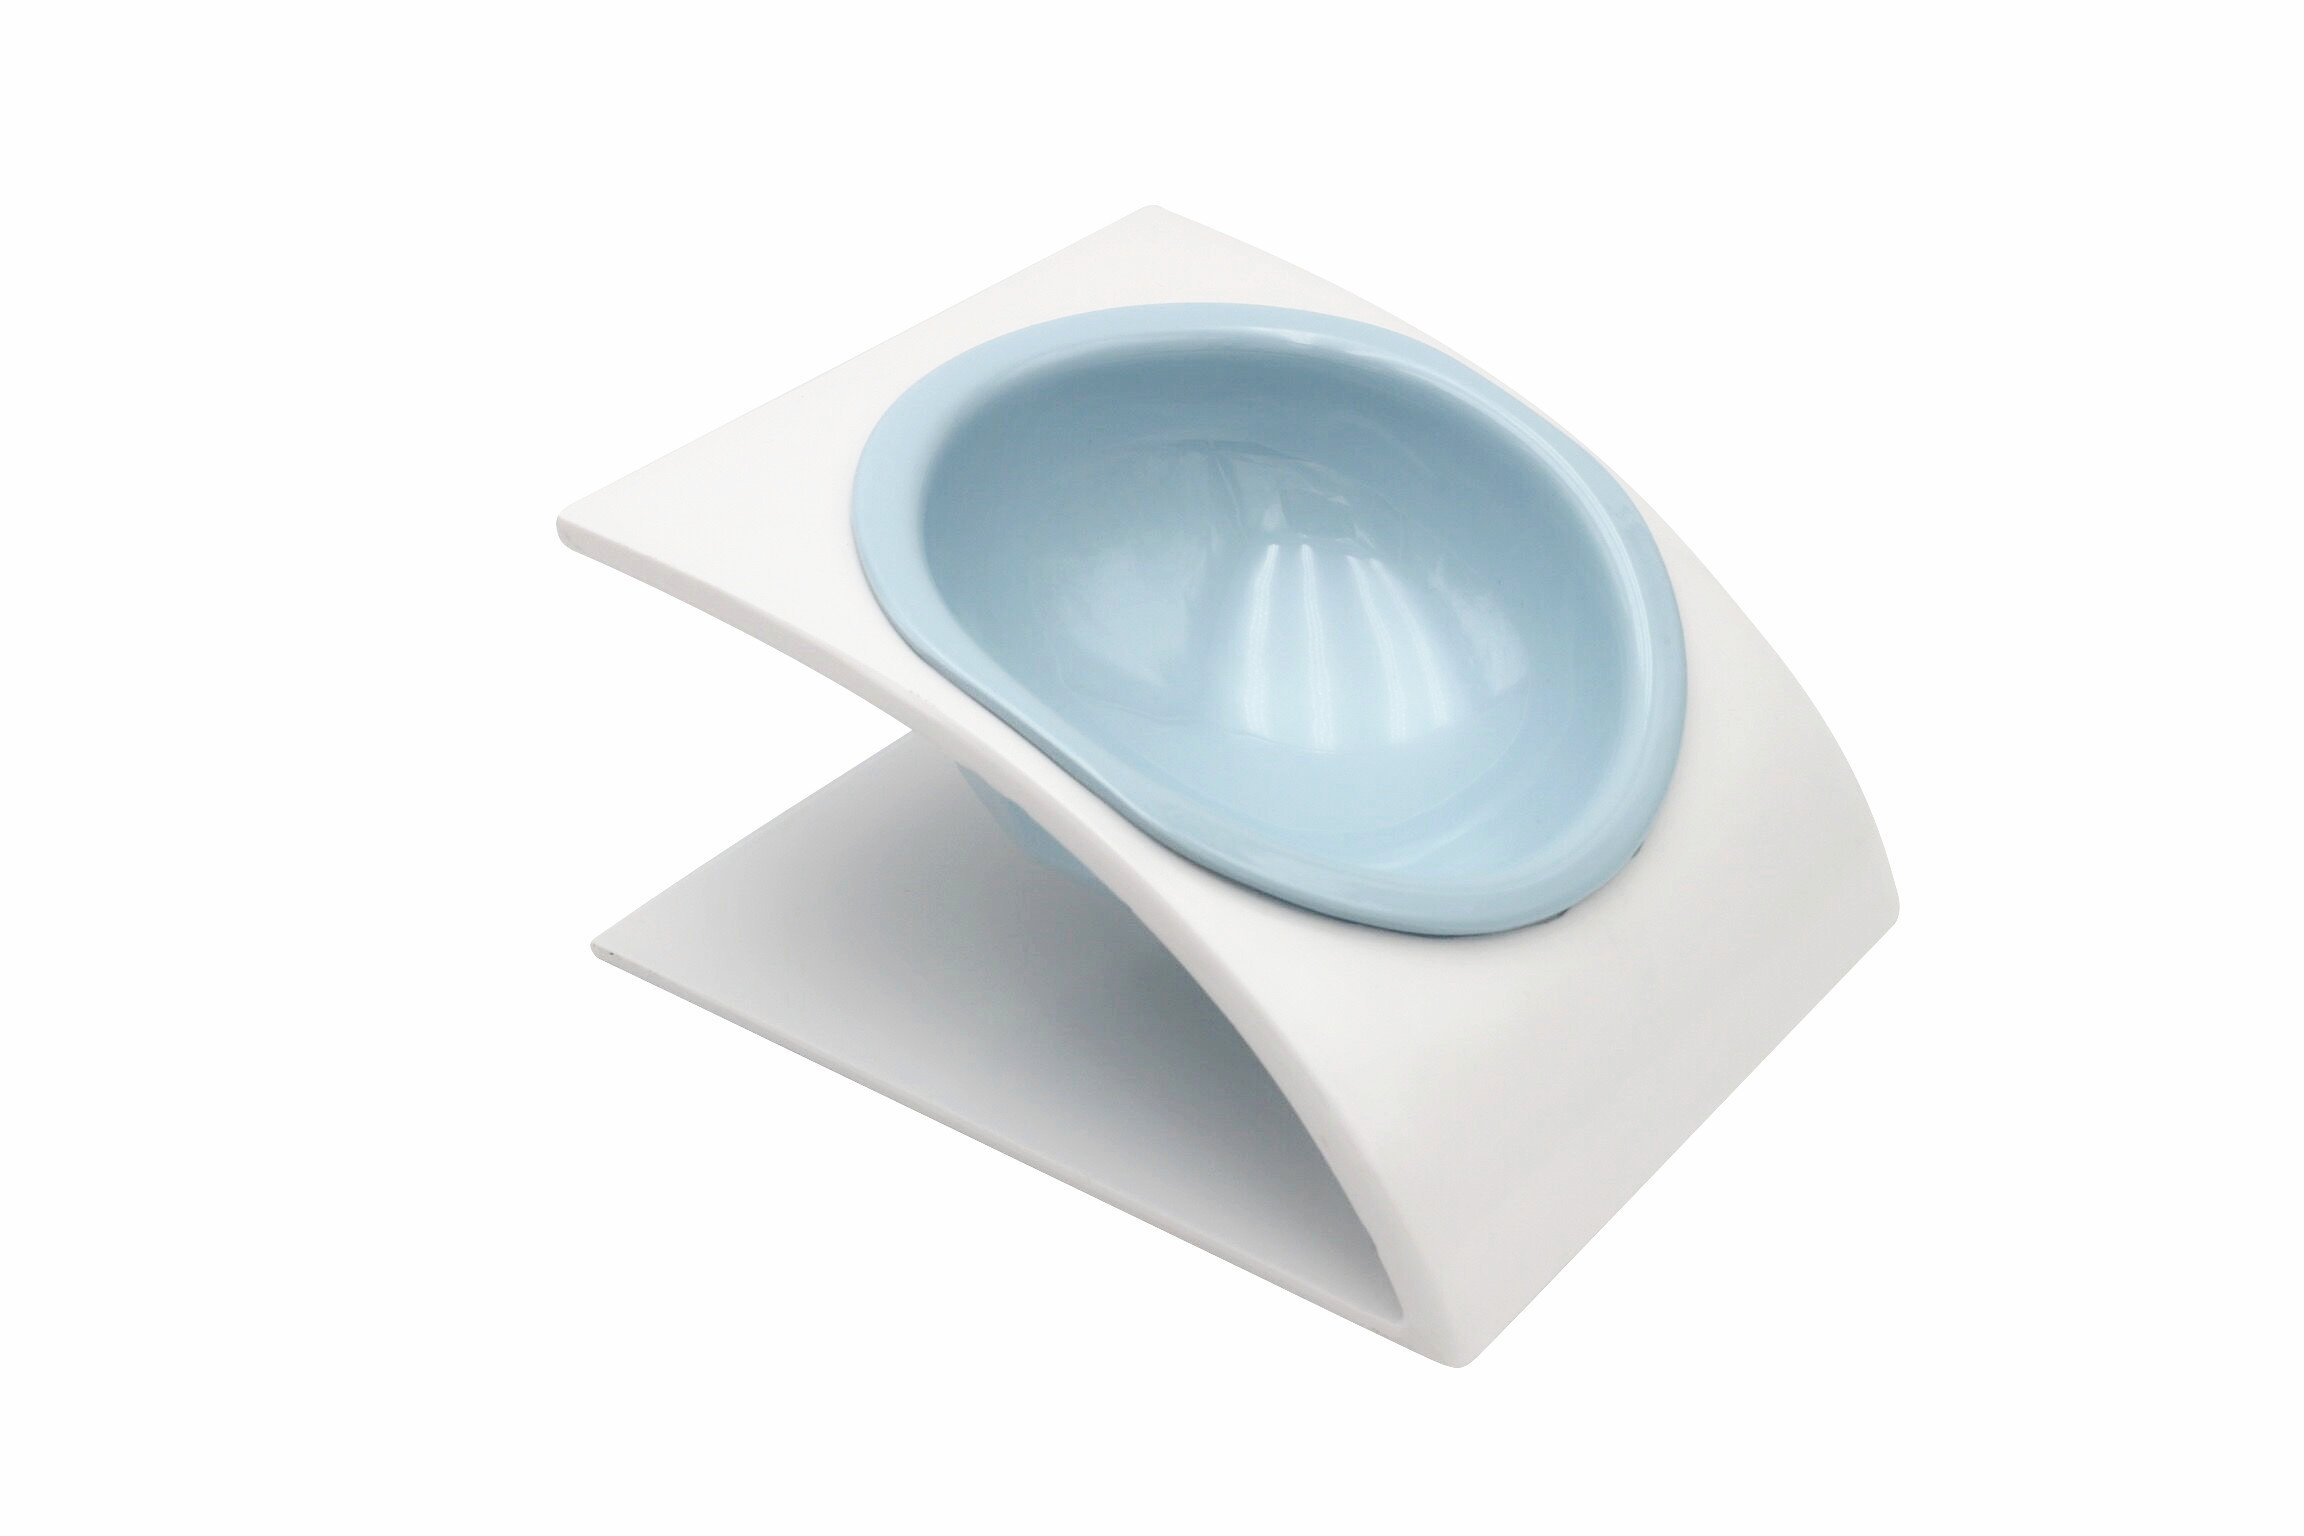 Elevated Cat Dog Bowls Separable Pet Food Feeder Raised Pet Bowls with Stand for Cats, Small Dogs-White&Blue